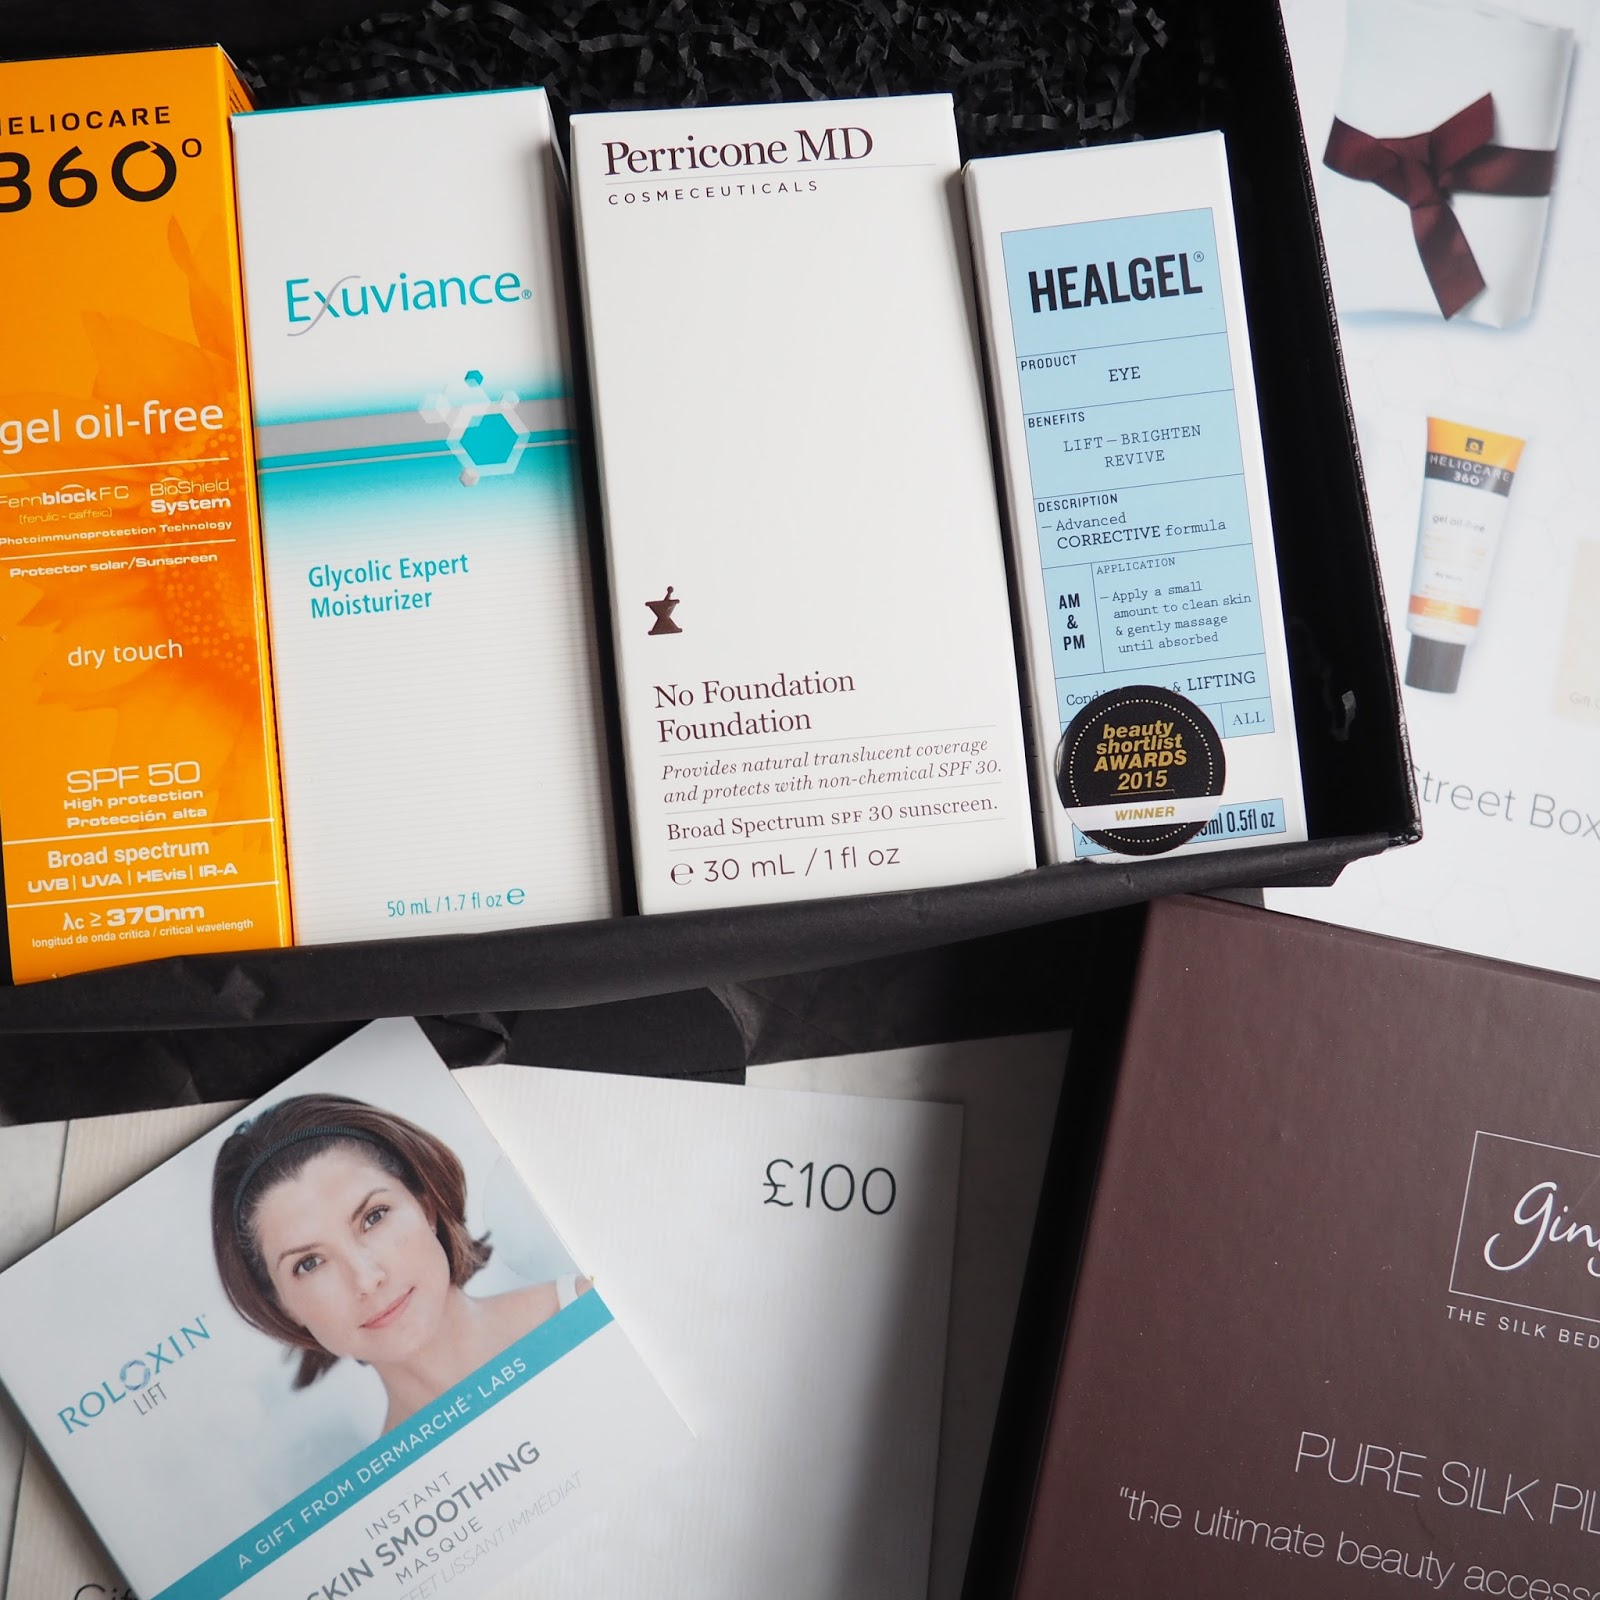 Harley Street Latest in beauty box